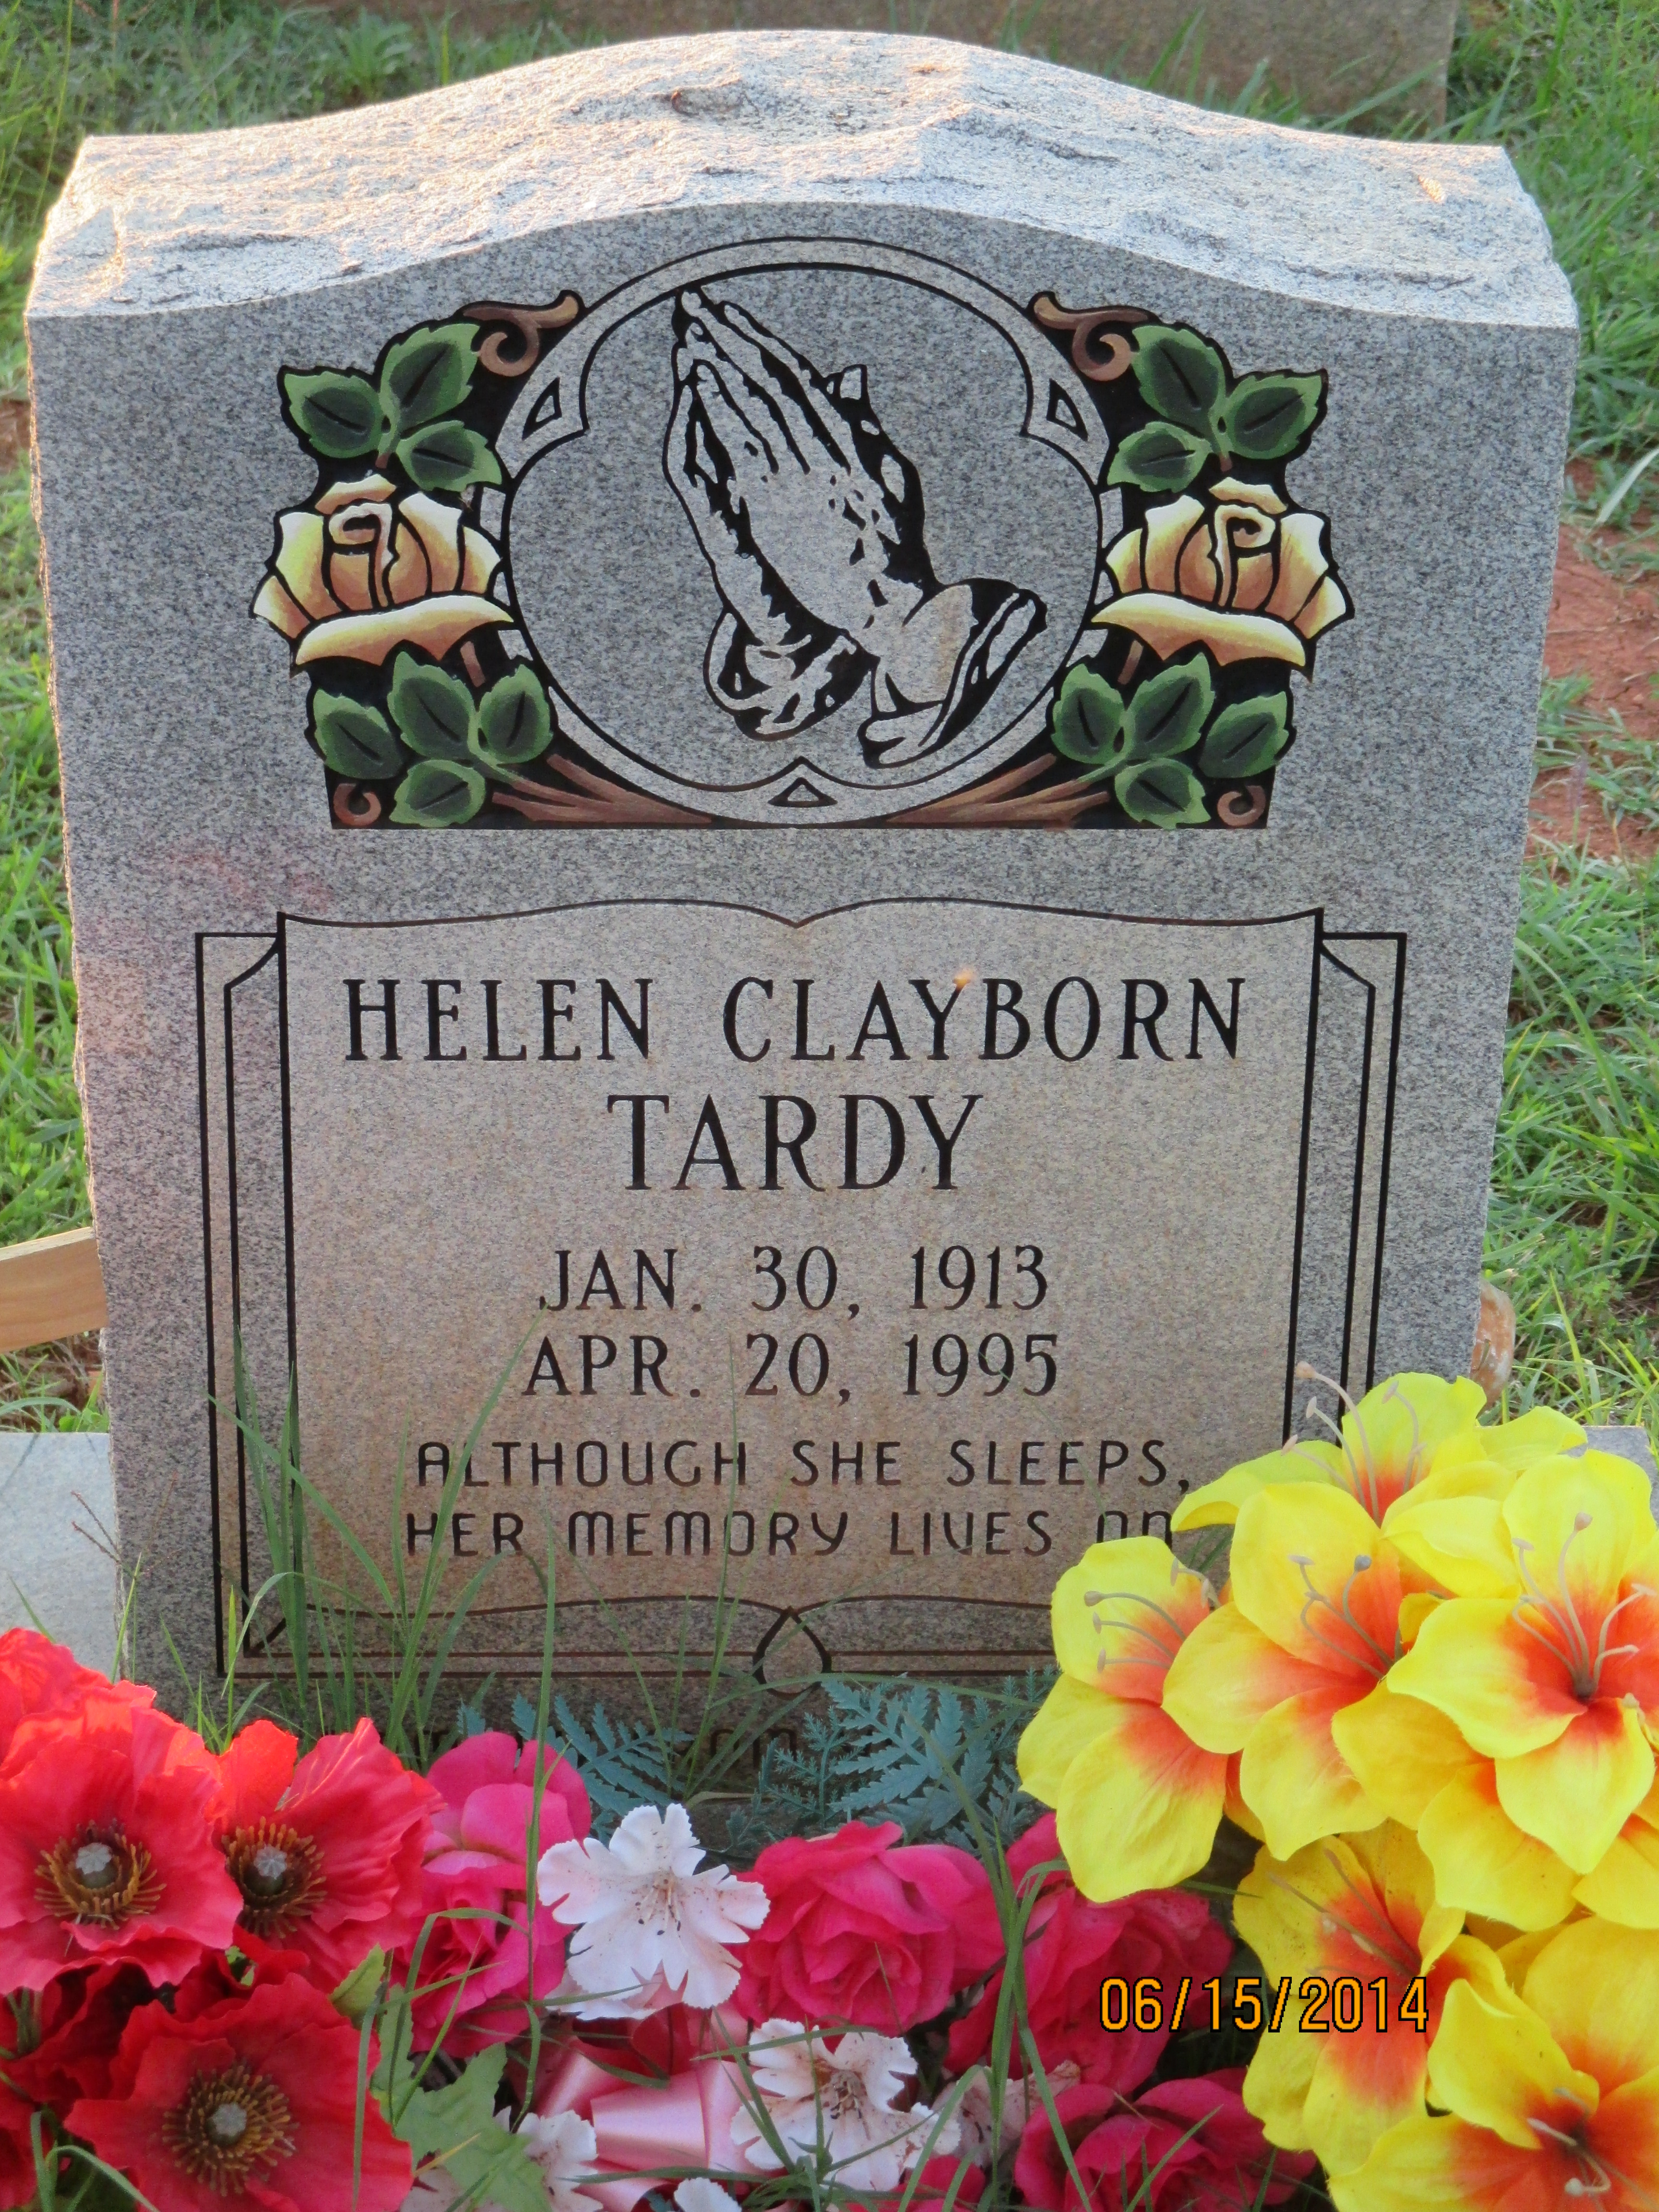 Helen clayborn tardy 1913 1995 find a grave memorial